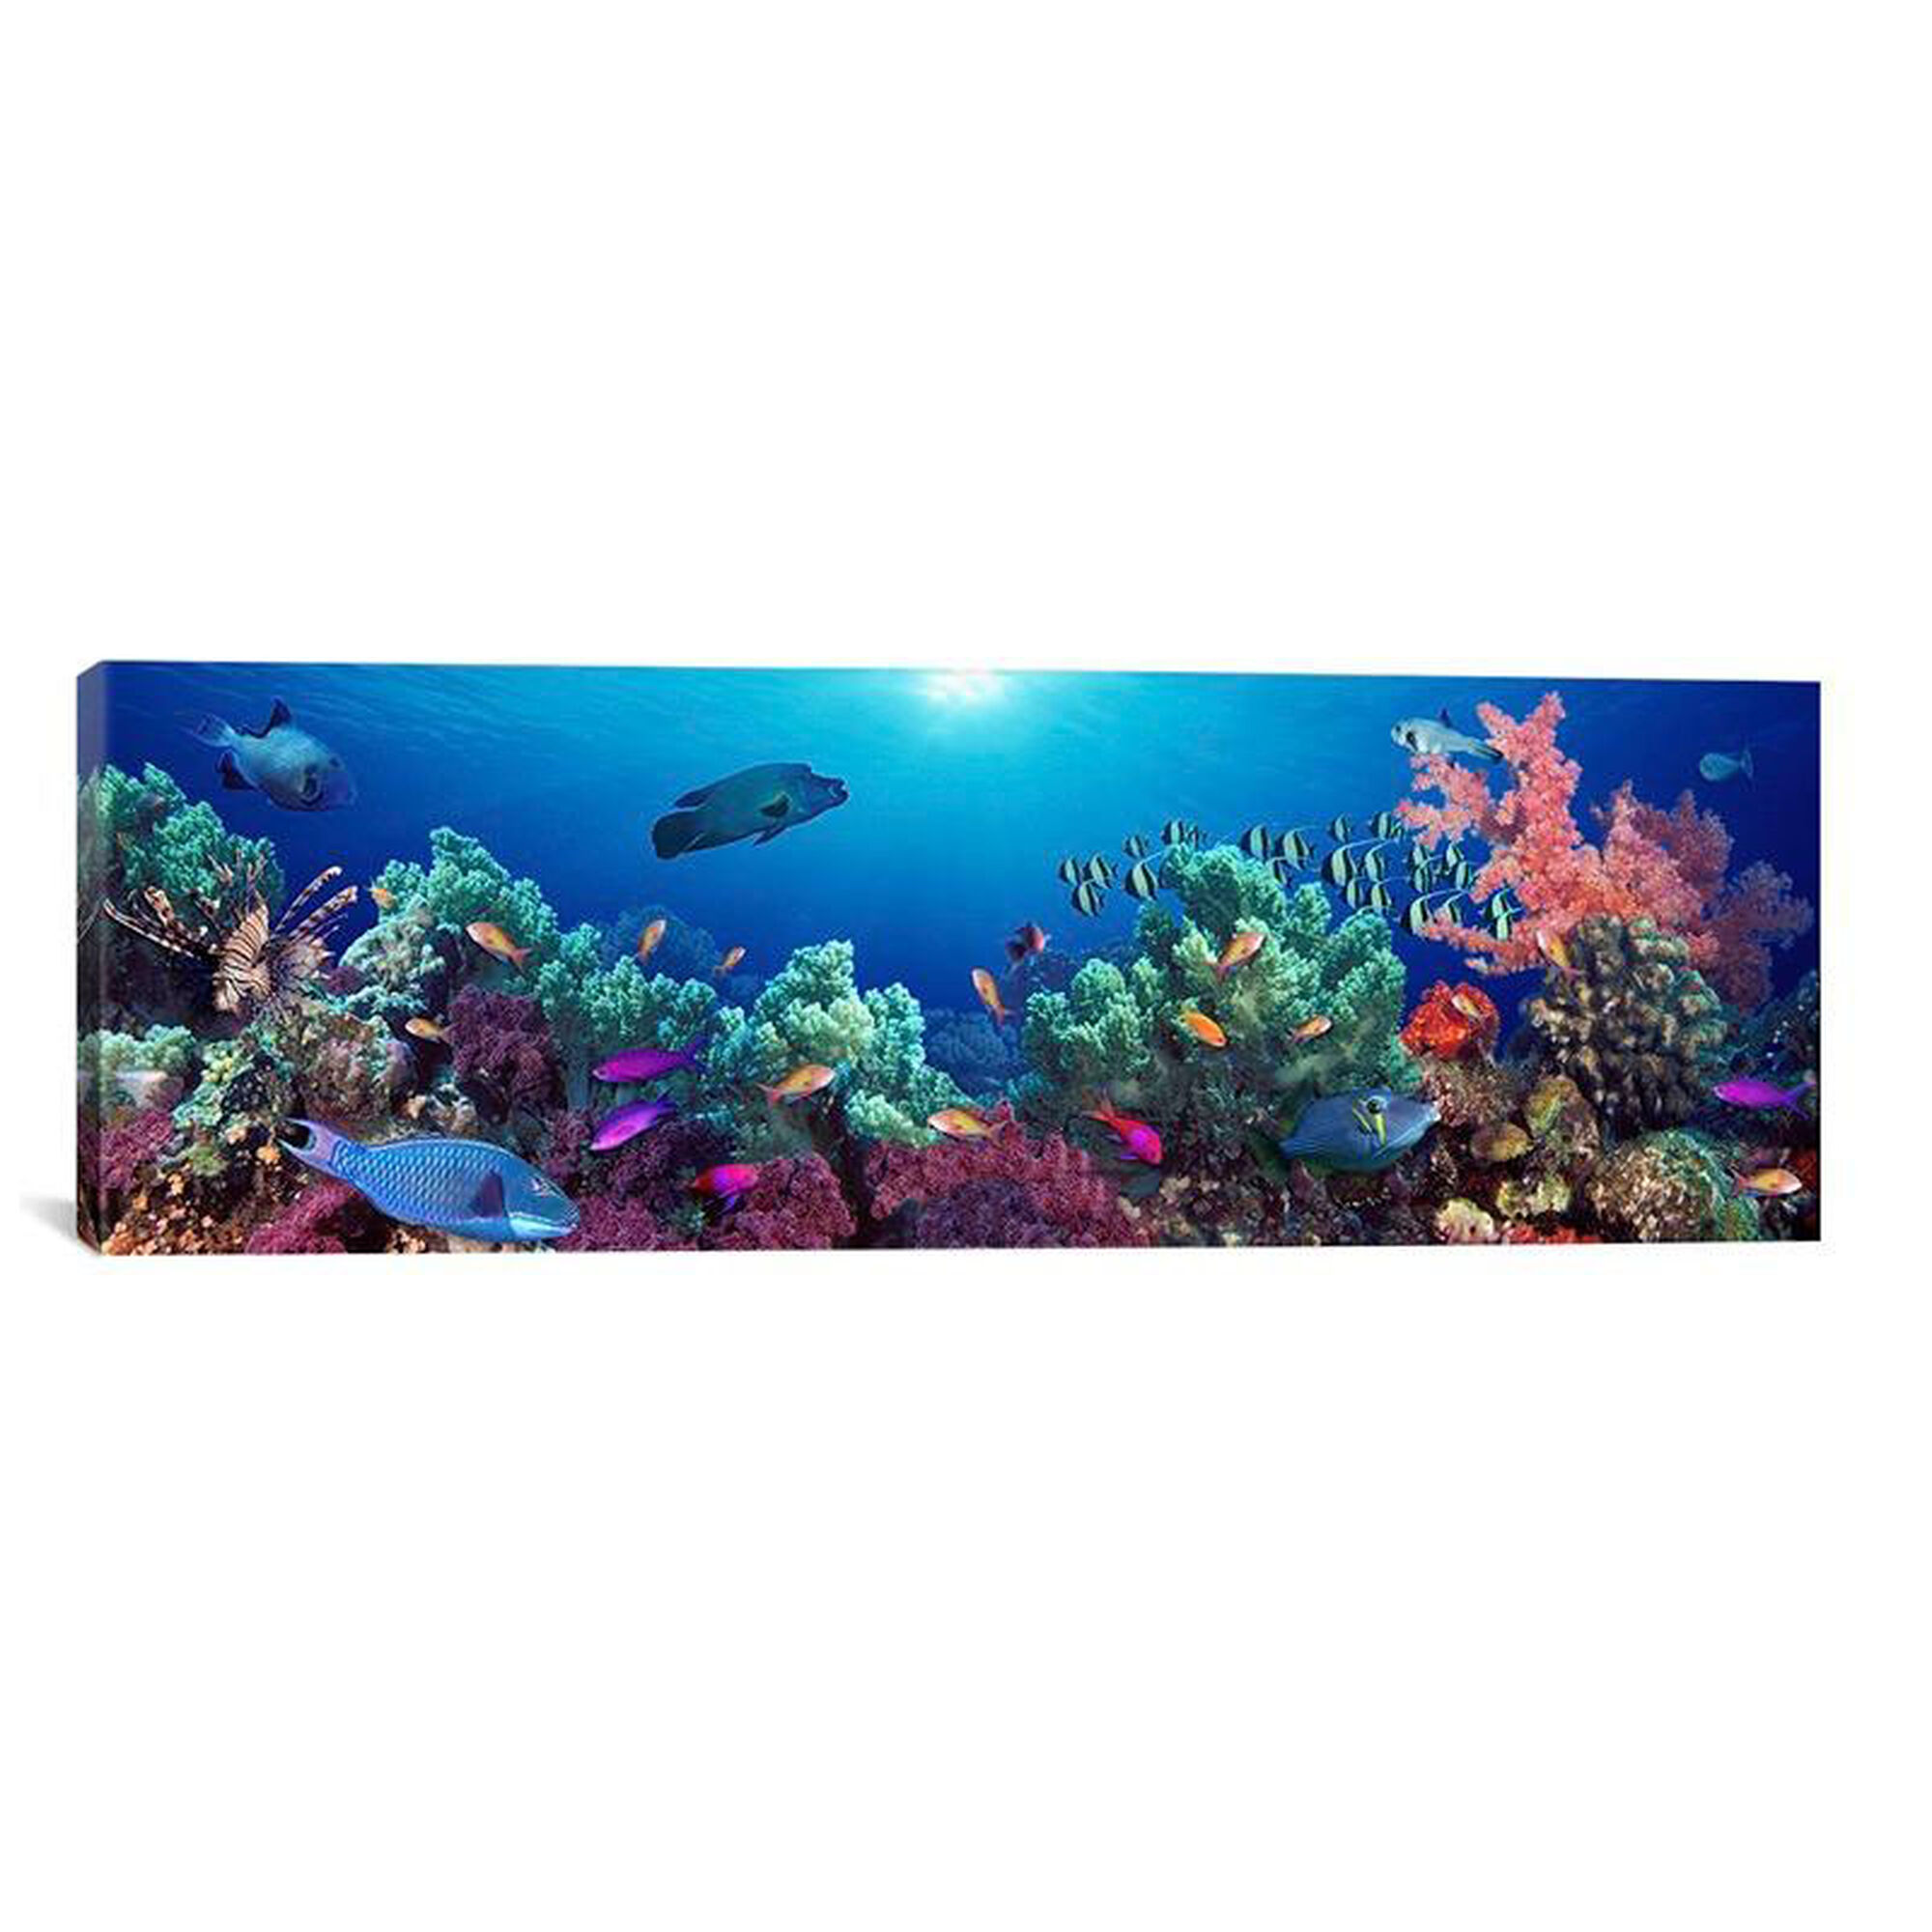 Wrapped canvas artwork pim5751 1pc3 36x12 for Fish delivery near me